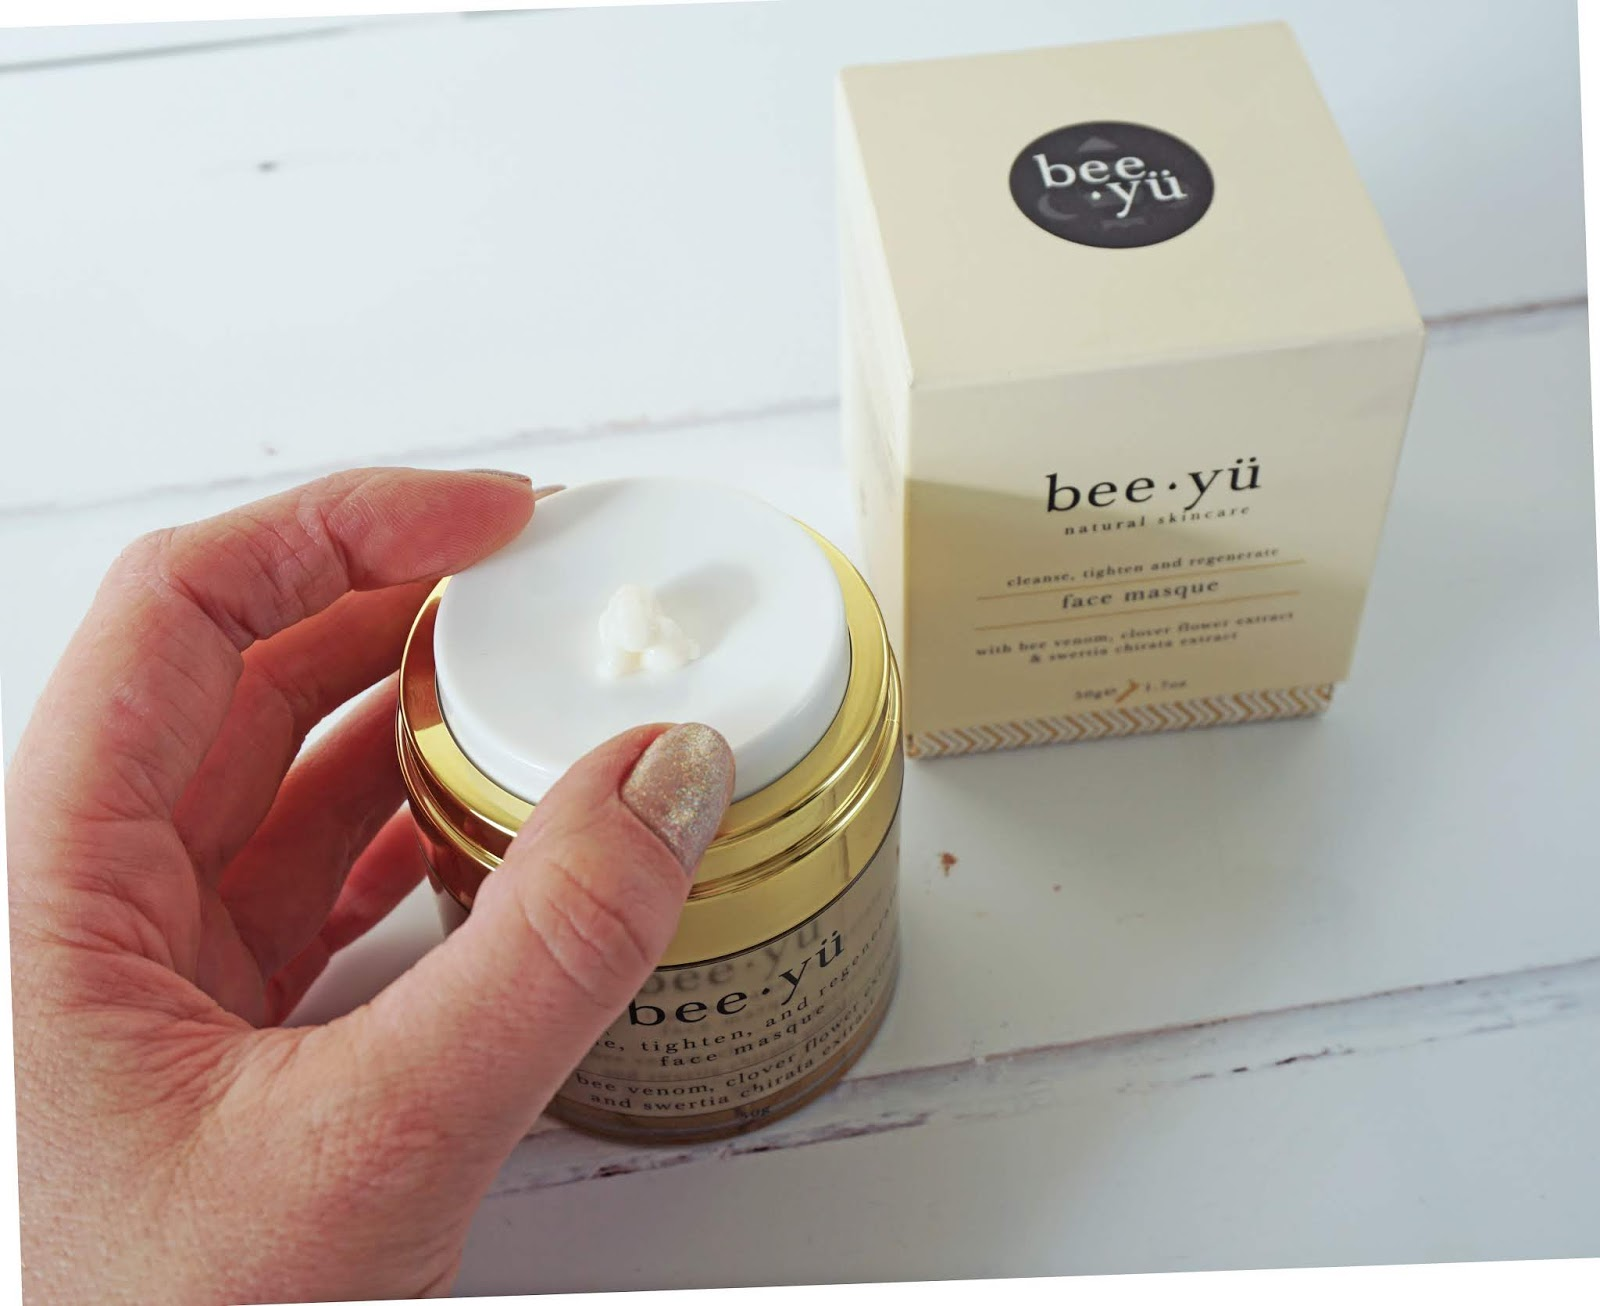 BEE YÜ FIRMING + REGENERATING FACE MASQUE